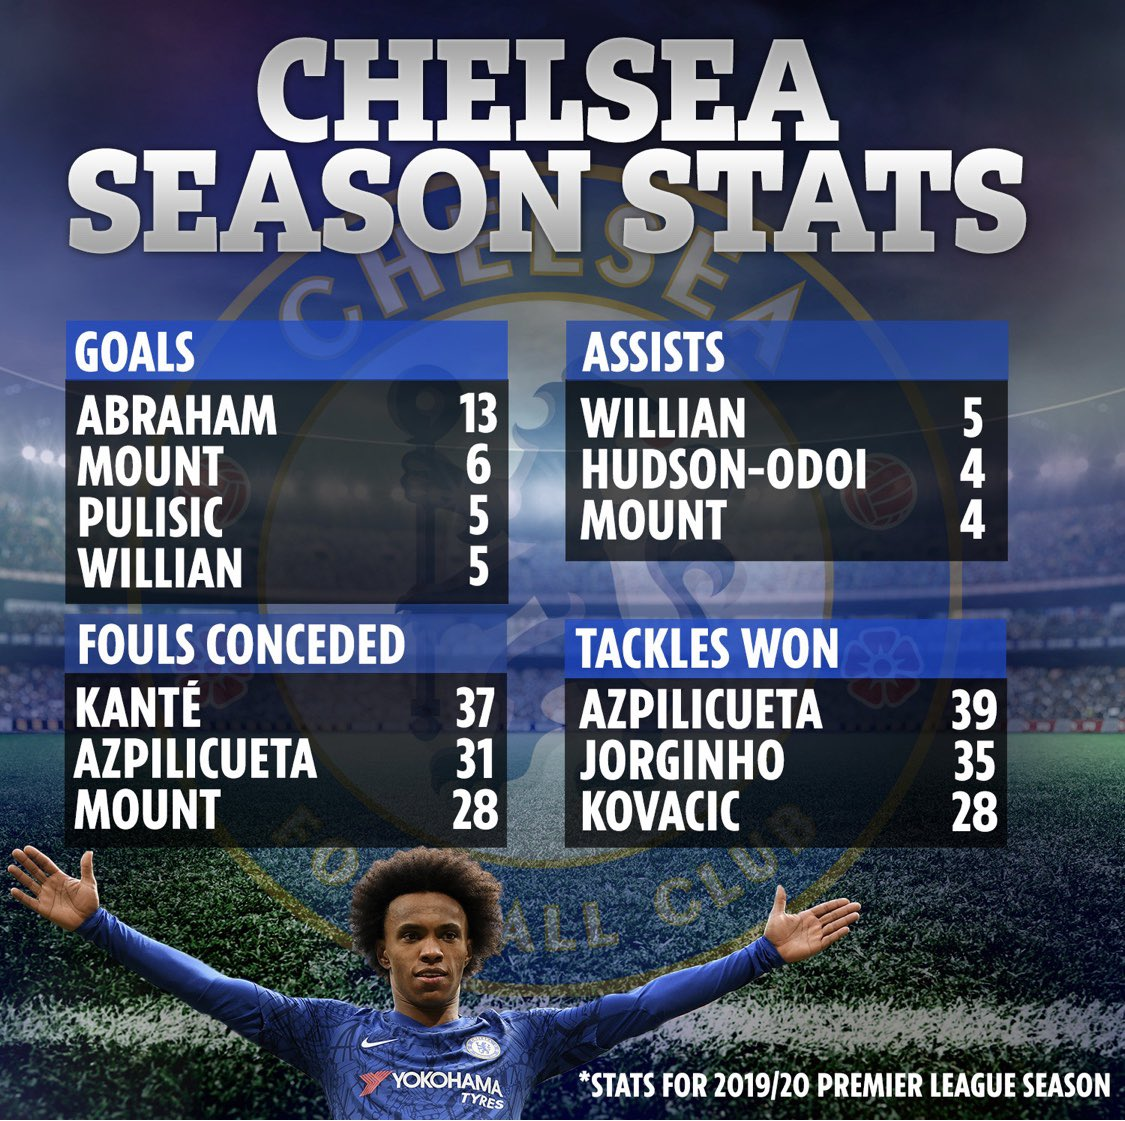 Here are @ChelseaFC stats so far this season. You can see the importance of Mason Mount & what he has done. #CFC https://t.co/hJaasHHcIf